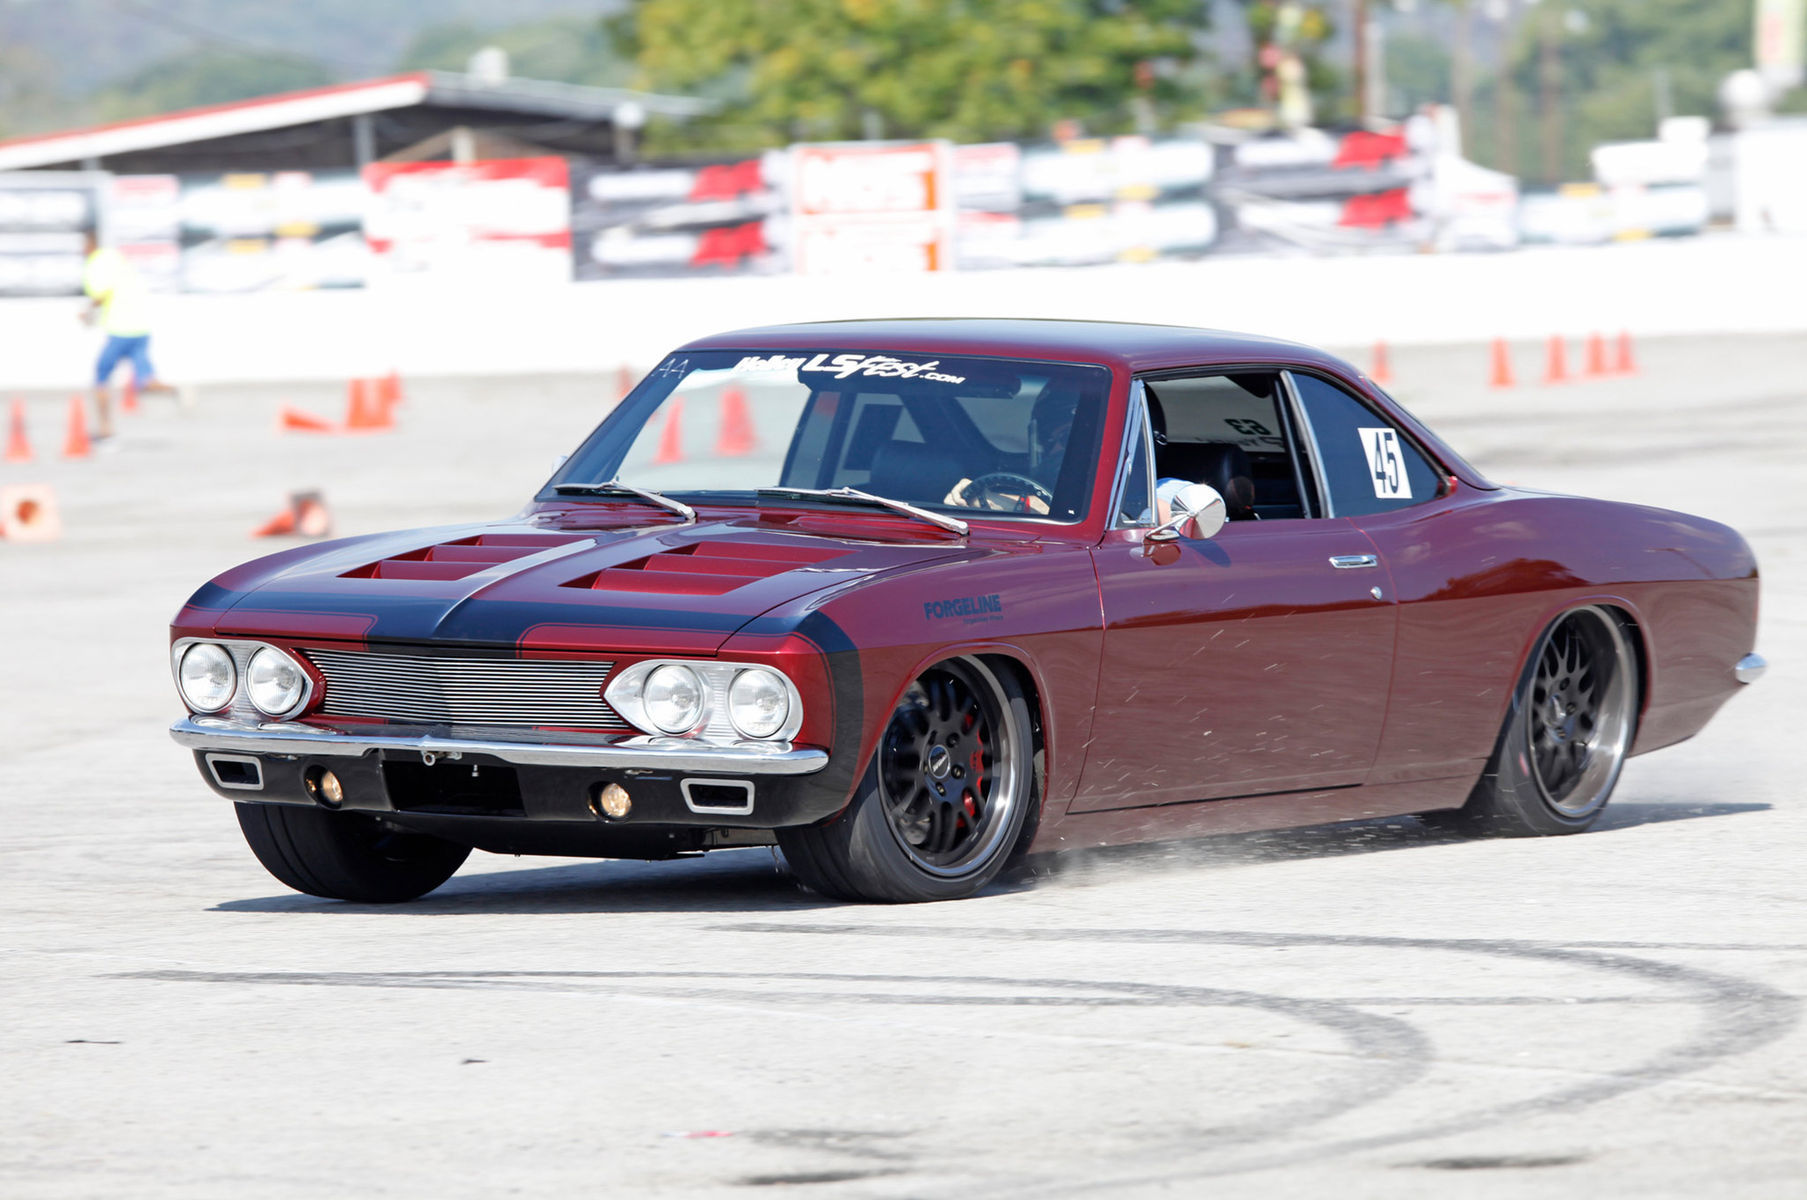 1966 Chevrolet Corvair | JB Granger's Corvair on Forgeline DE3P Wheels - On The Track